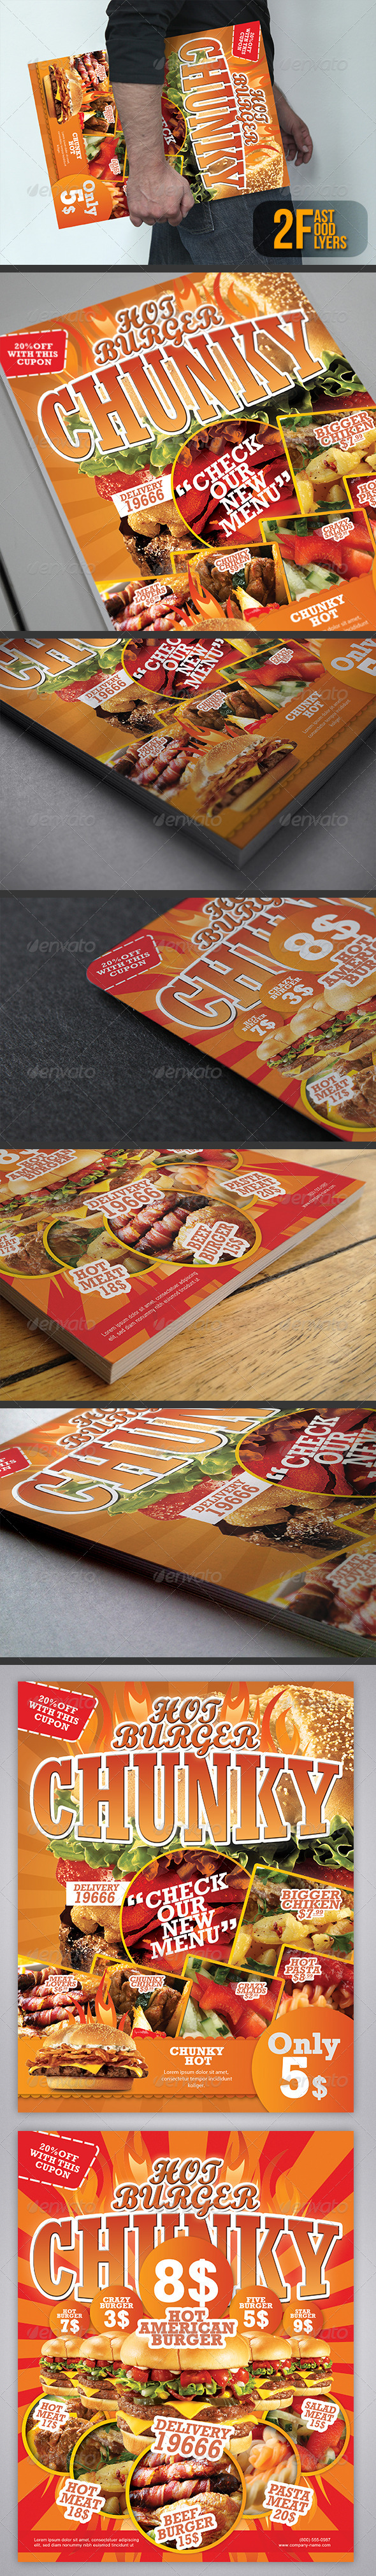 Fast Food Flyers / Magazine Ads - Restaurant Flyers